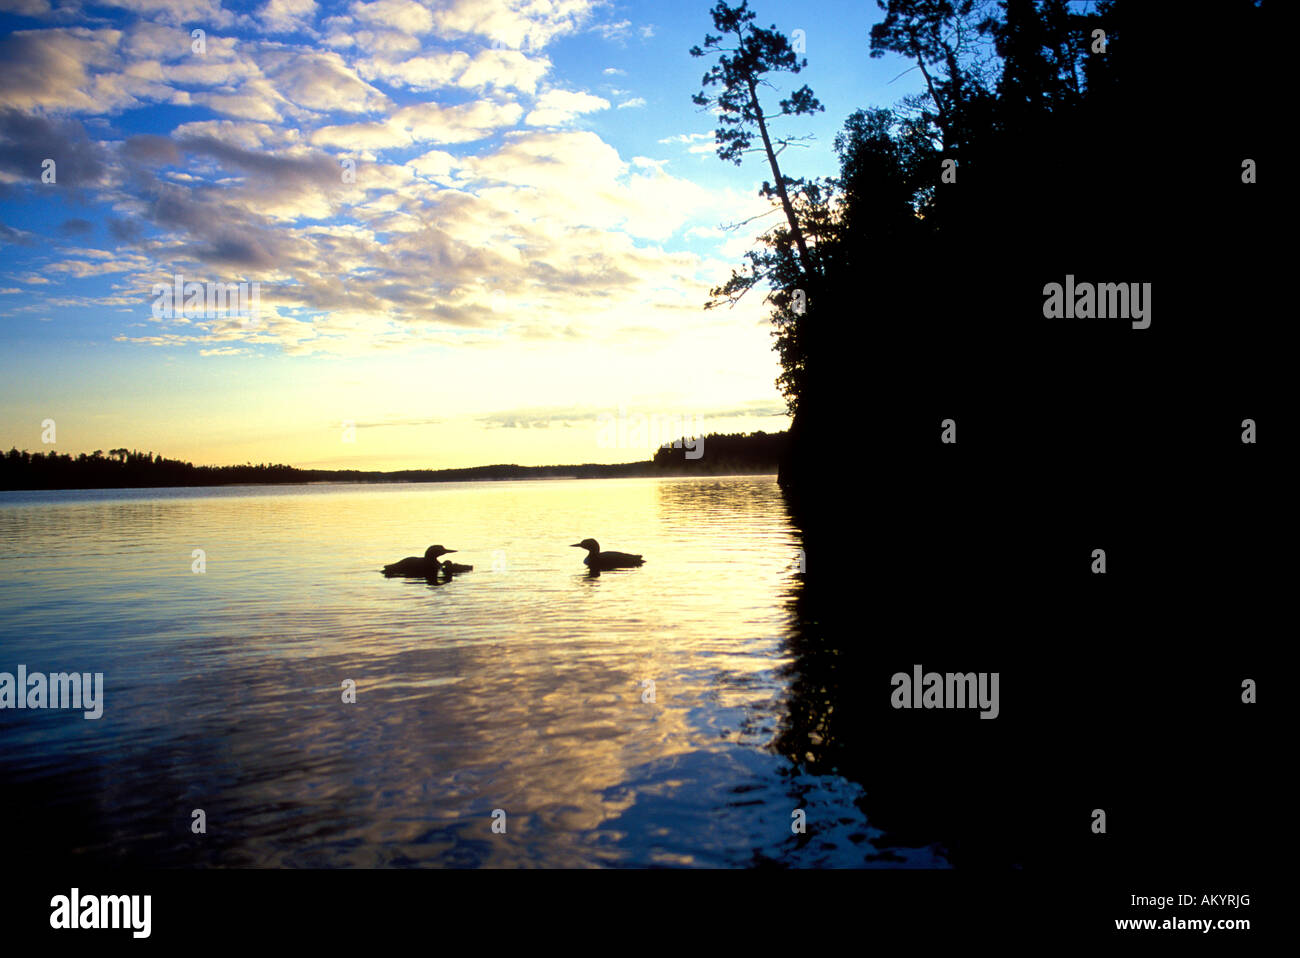 Common Loon on Seagull Lake in the Boundary Waters Canoe Area Wilderness BWCAW Minnesota - Stock Image